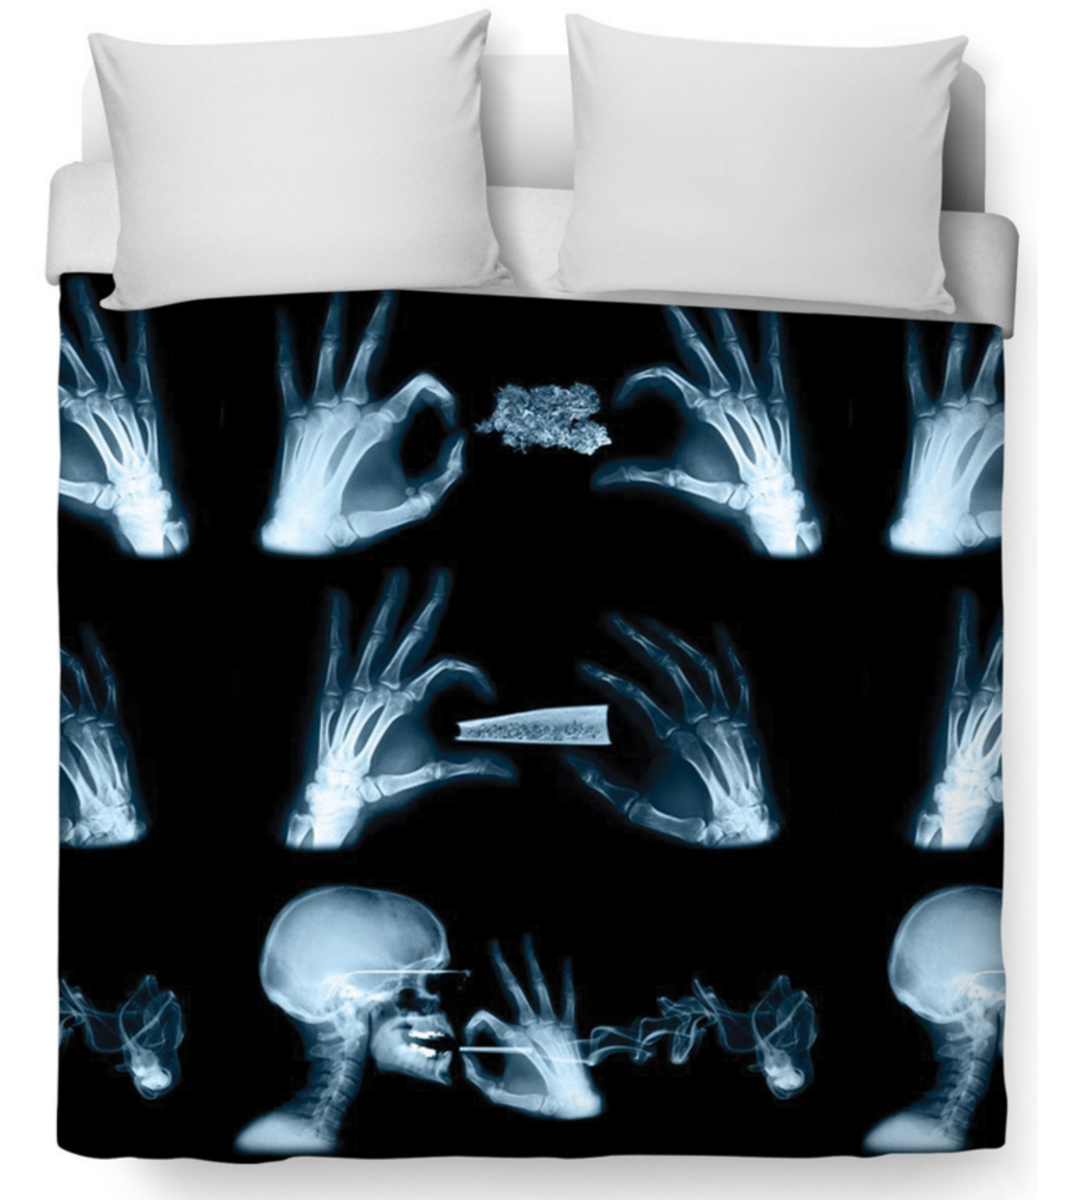 X-Ray Duvet Cover